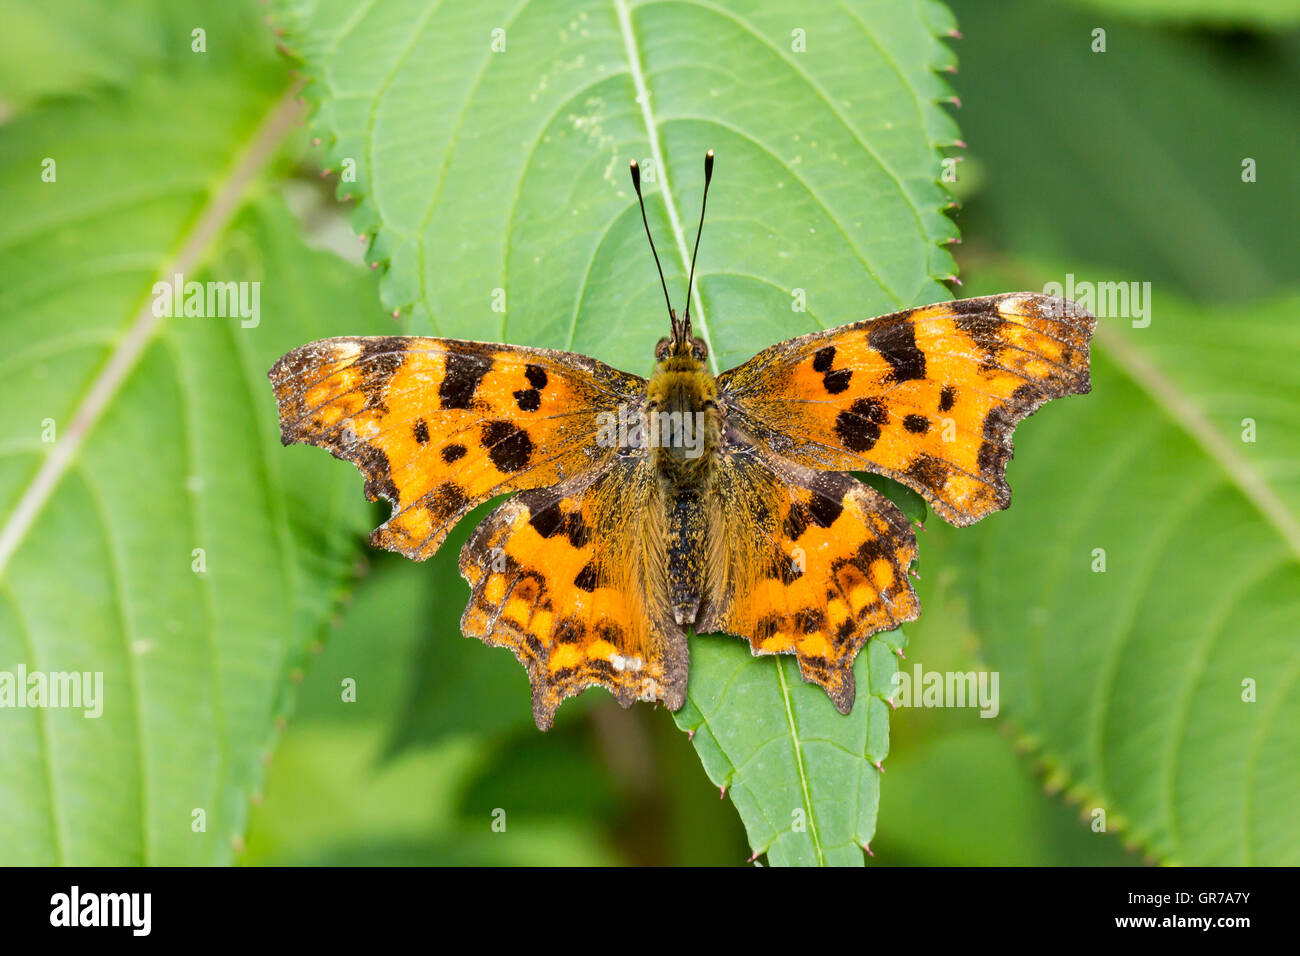 Nymphalis C-Album, Polygonia C-Album, Comma Butterfly From Germany - Stock Image